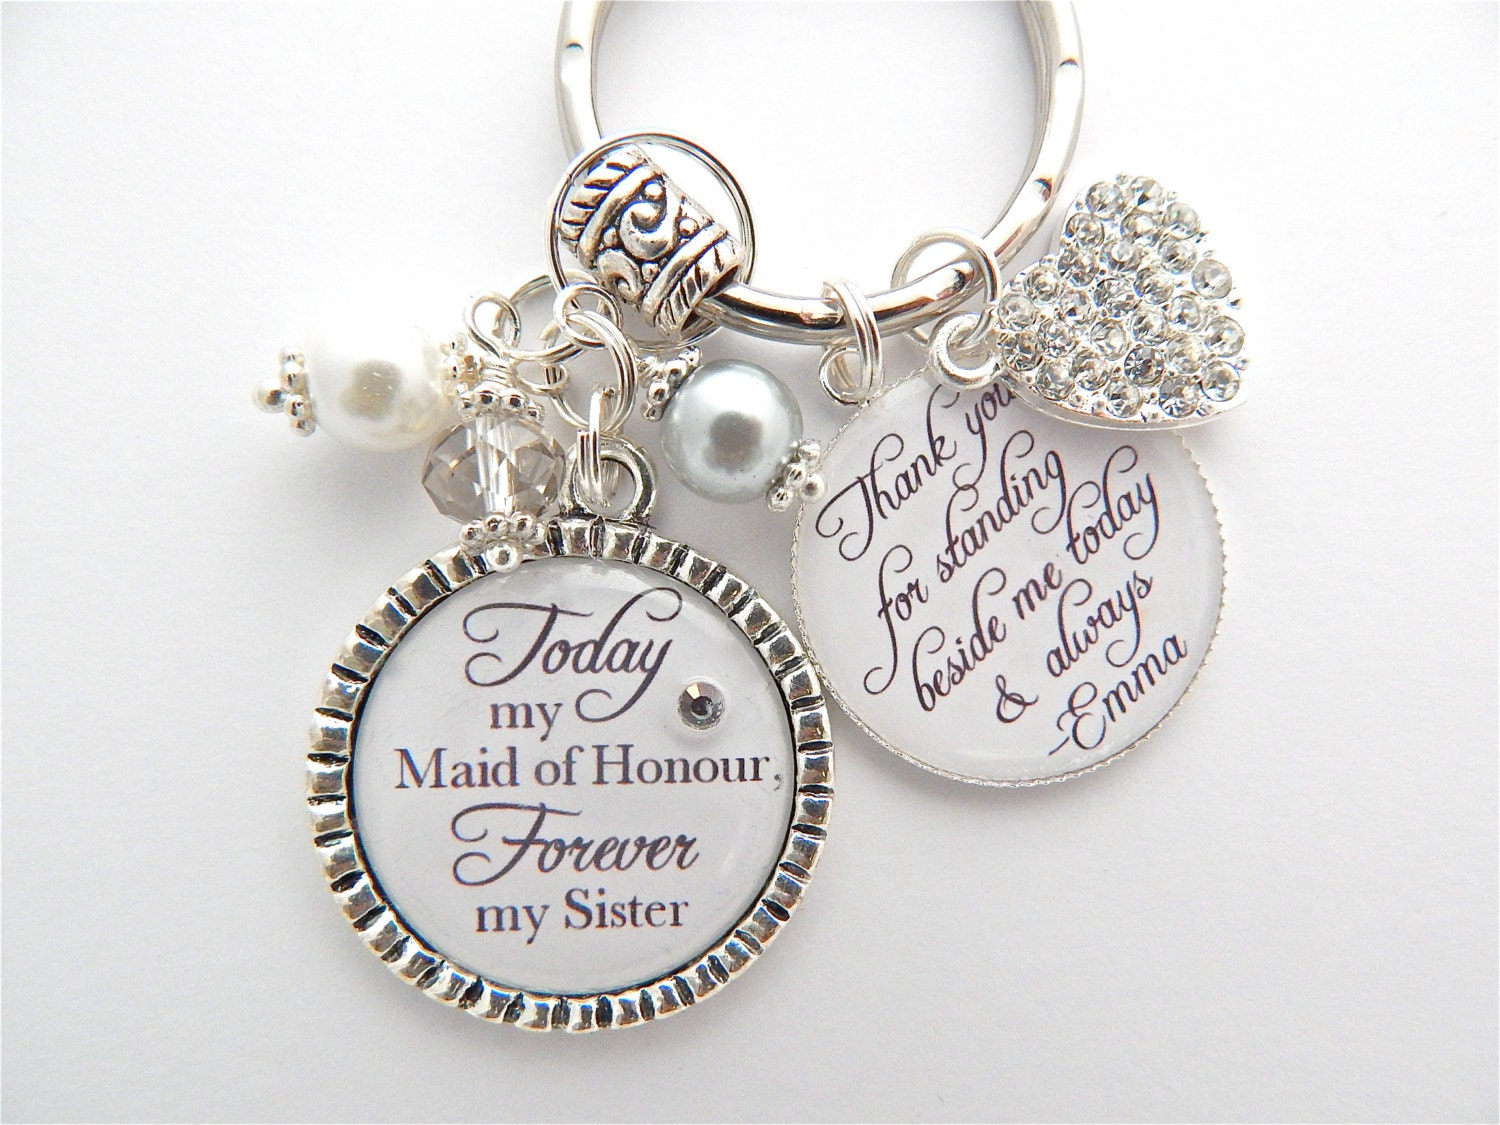 Wedding Gifts For Sister In Law: MAID Of HONOR Gift Bridesmaid Gift Rehearsal Dinner Gift